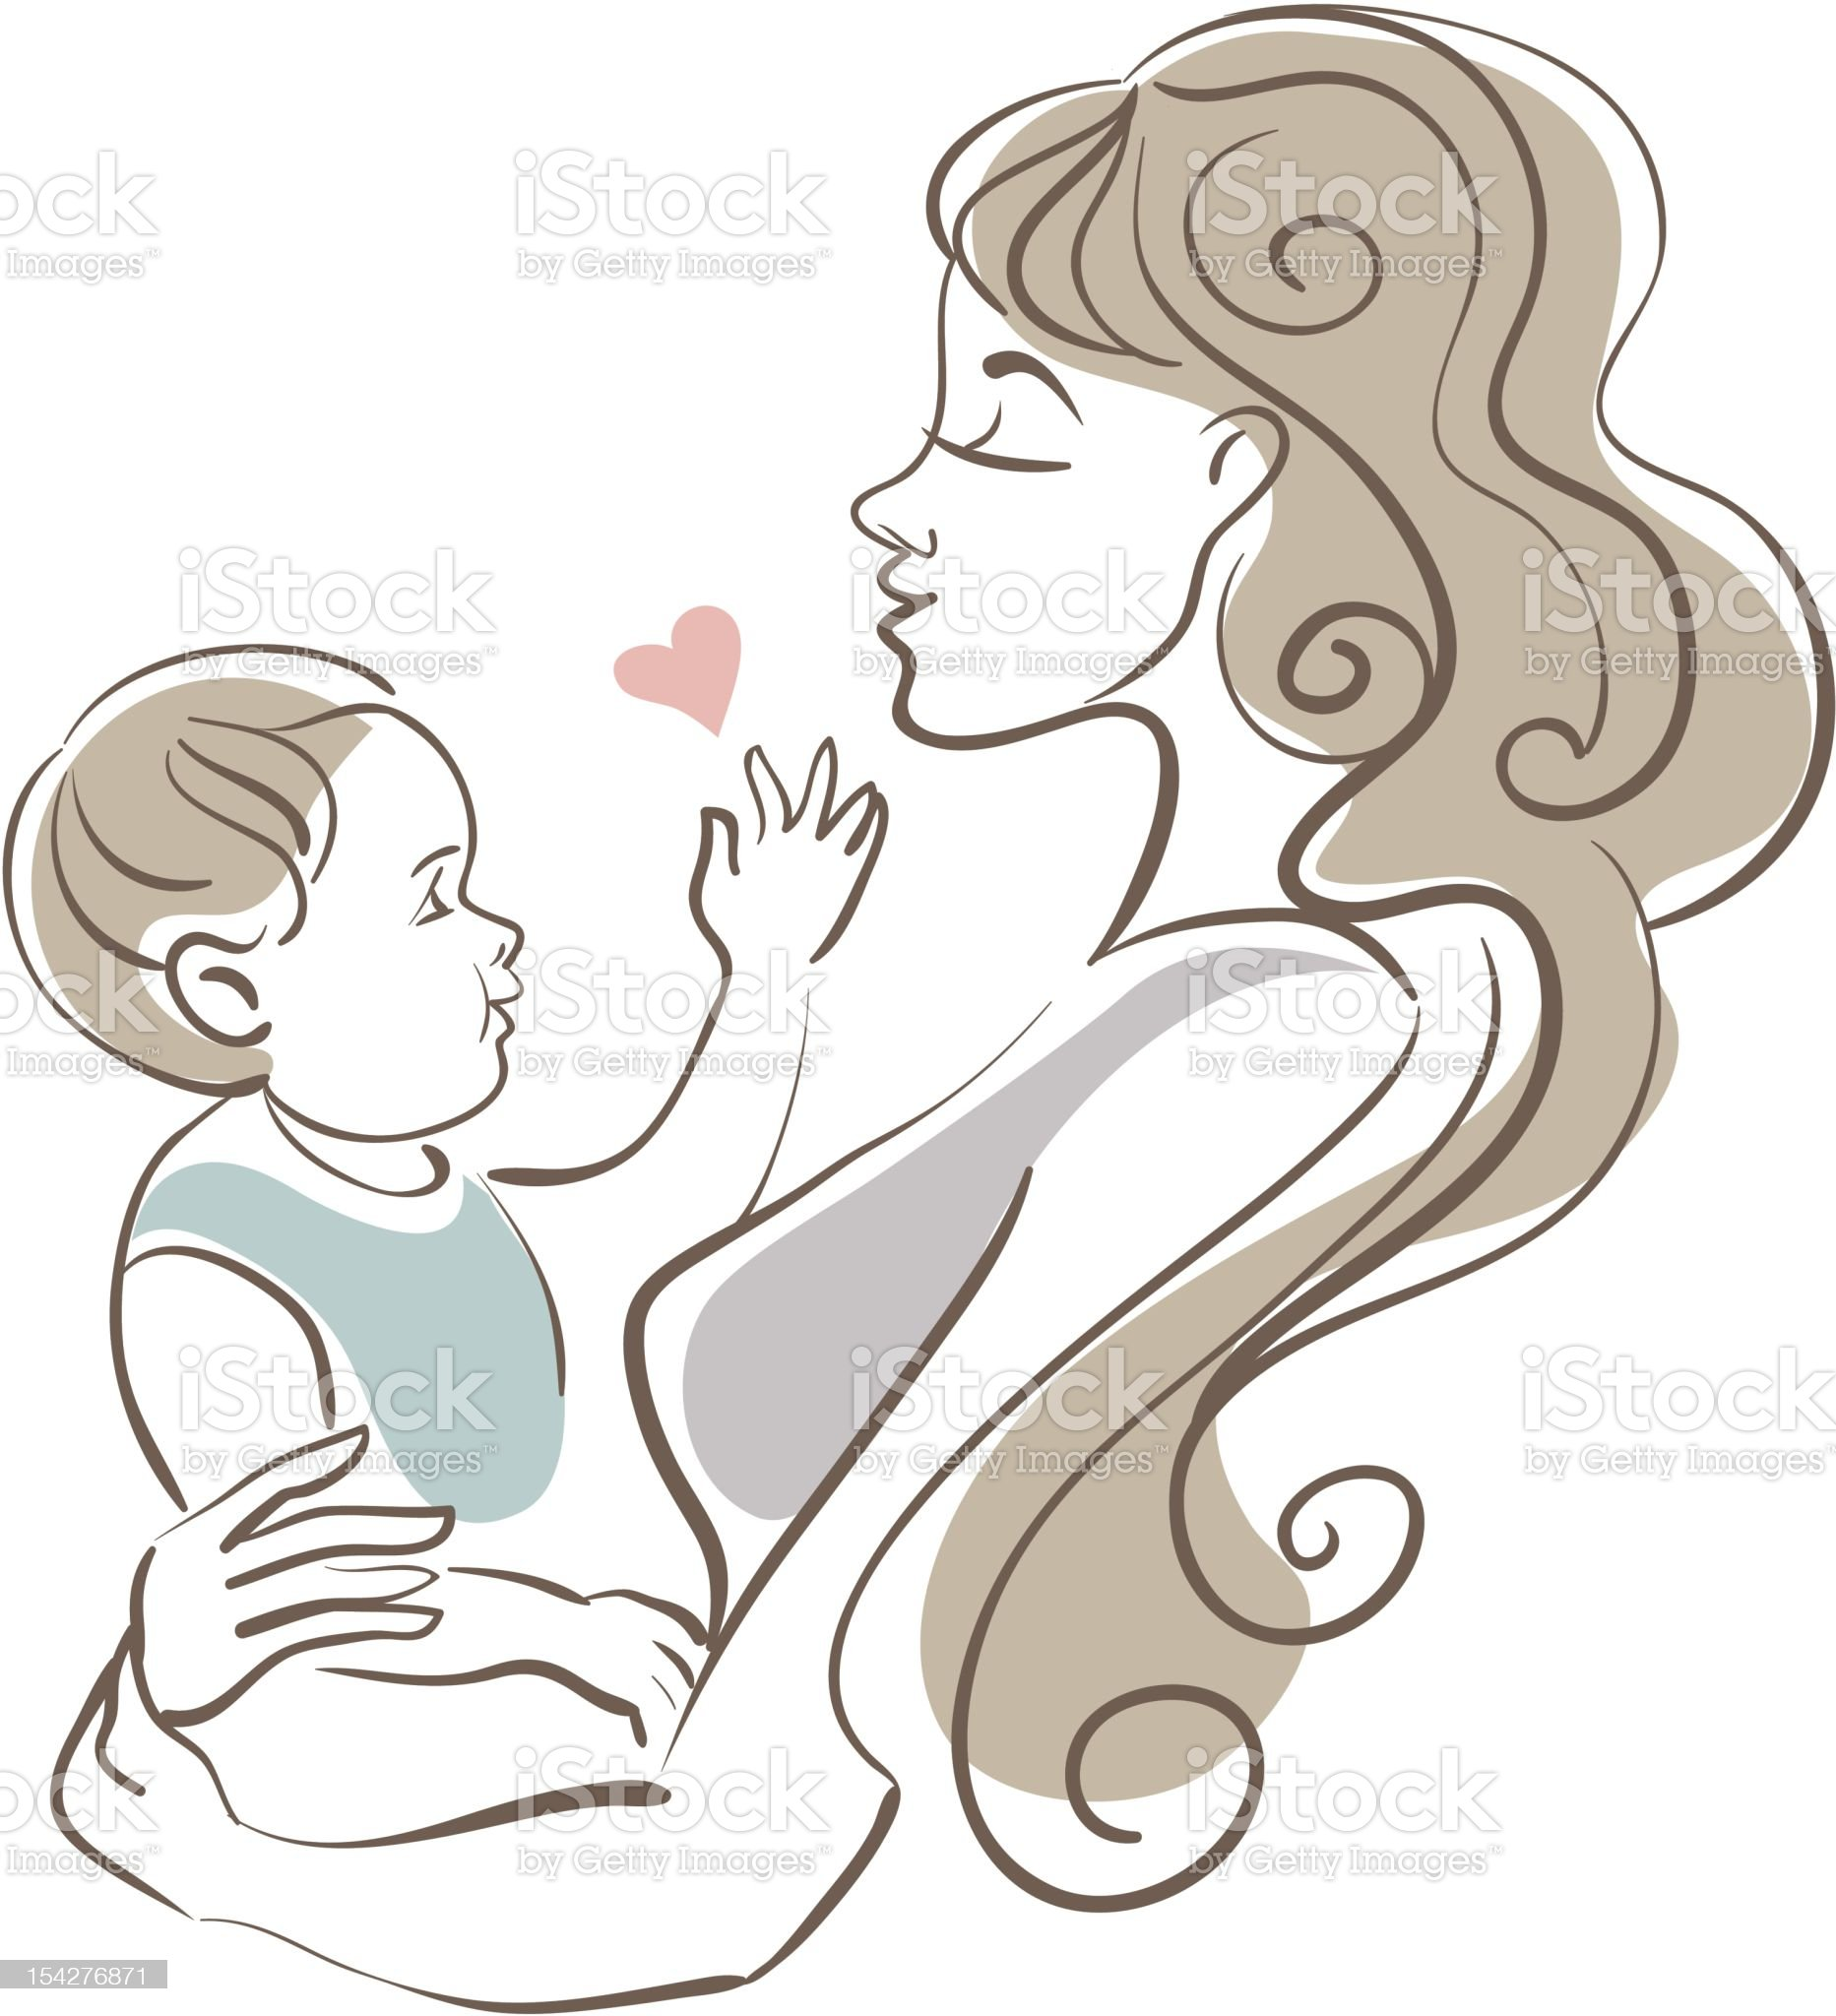 A cartoon image of a mother and her baby royalty-free stock vector art